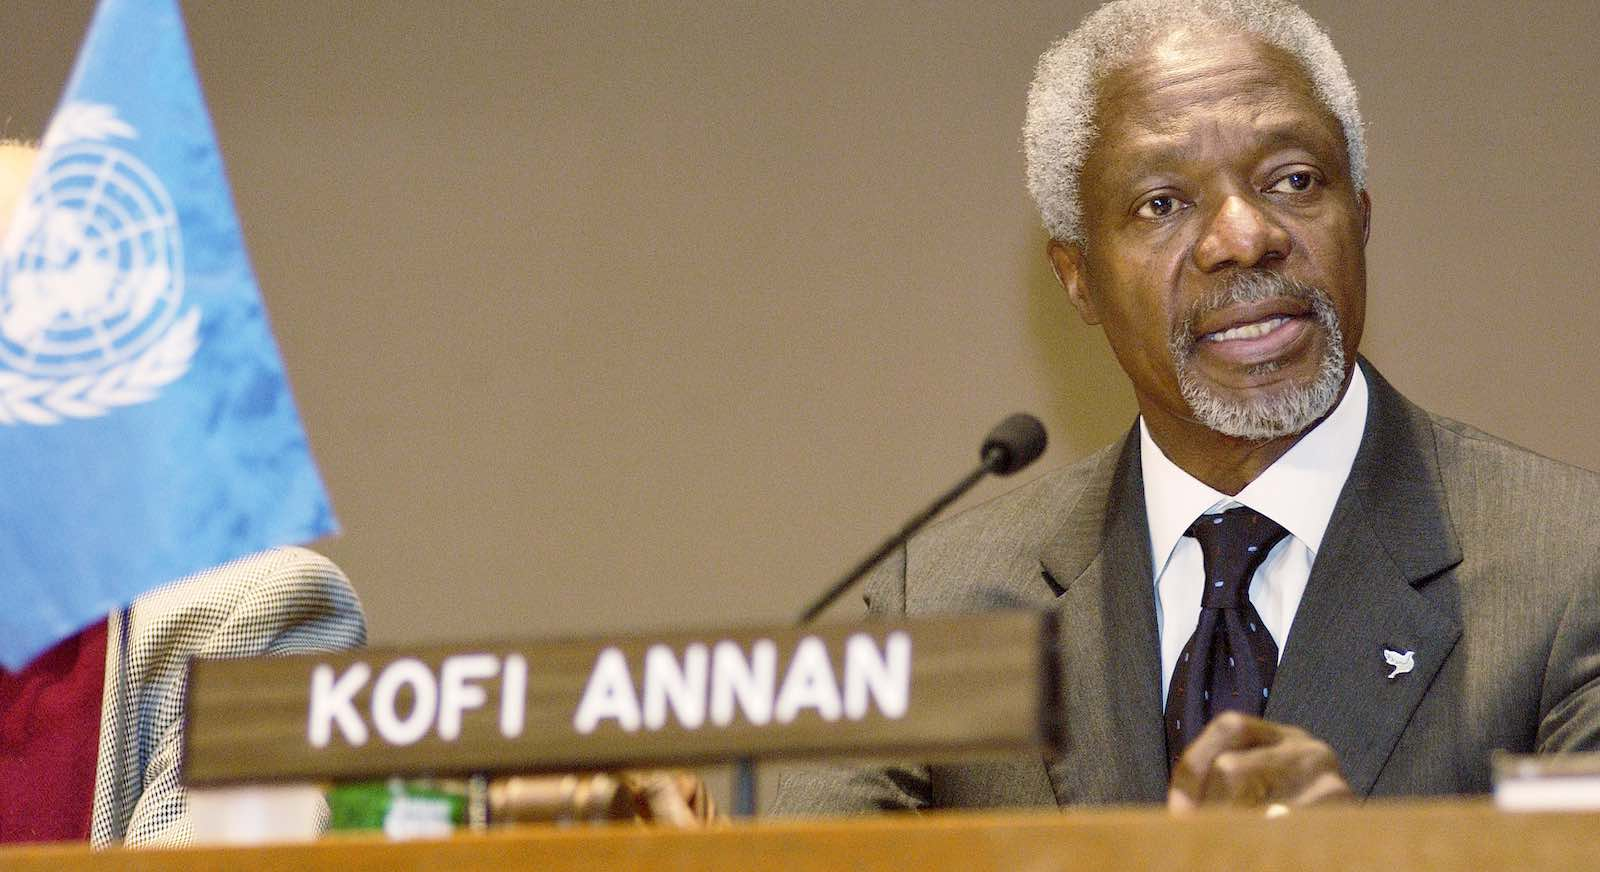 Kofi Annan, in 2004, during his term as UN Secretary General (Photo: Mark Garten/UN)